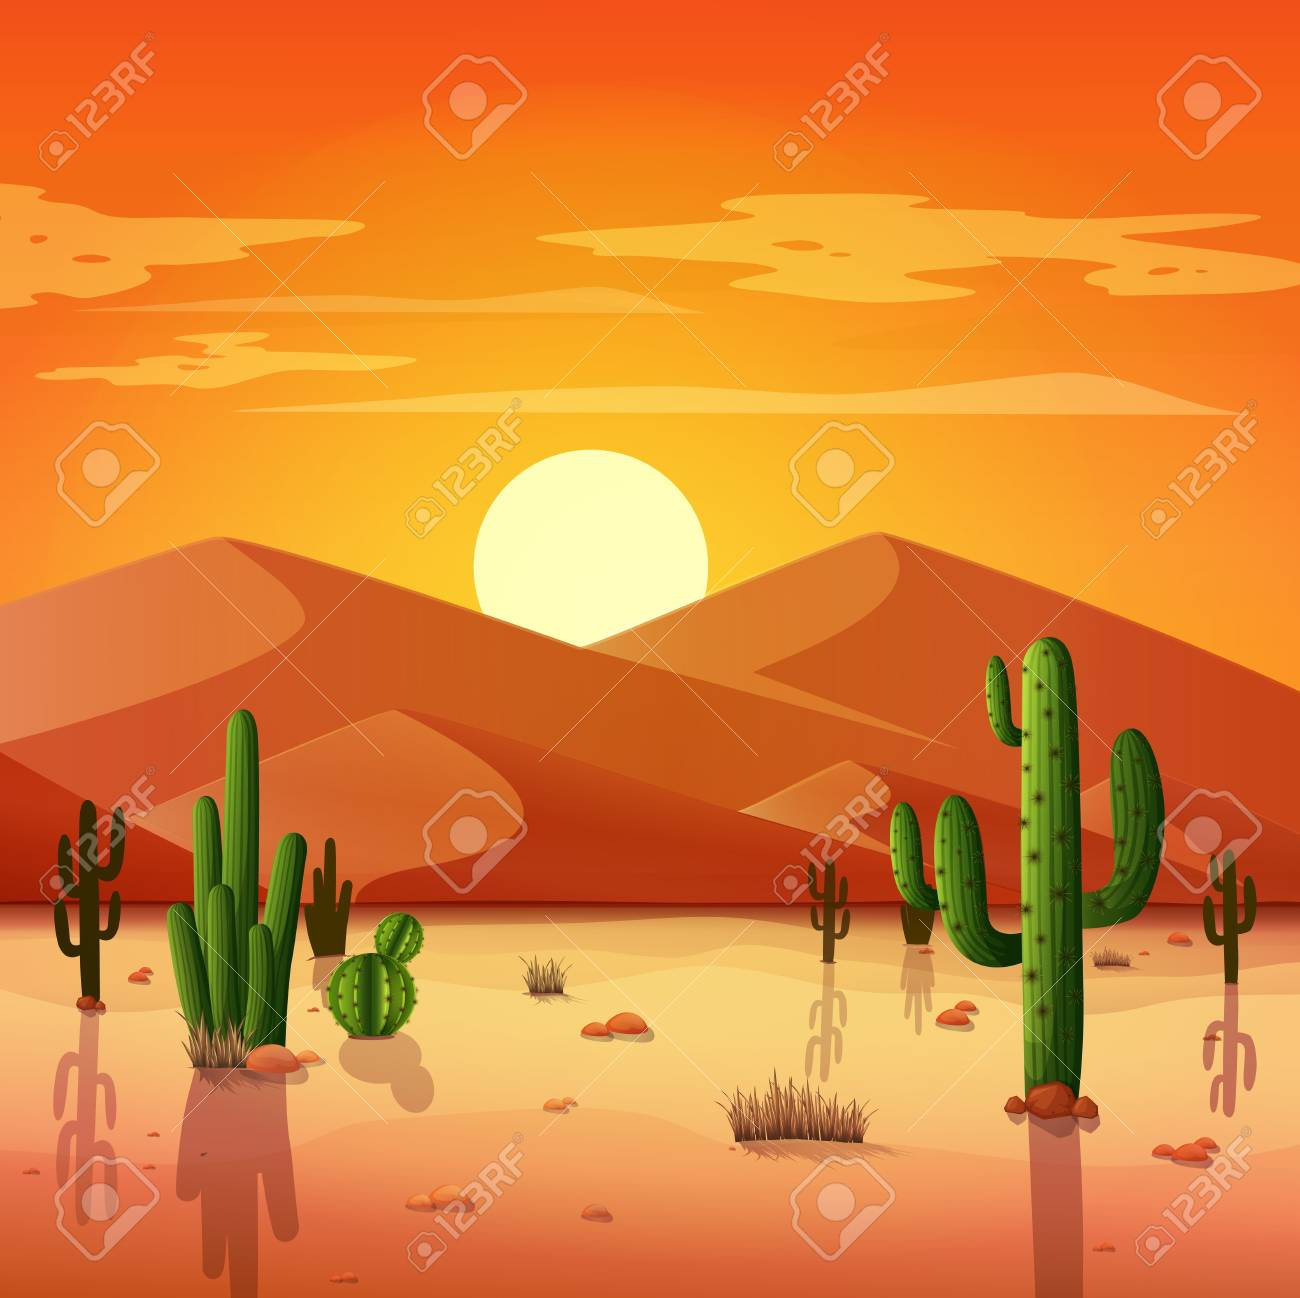 Desert Landscape With Cactuses On The Sunset Background Royalty Free Cliparts Vectors And Stock Illustration Image 100973452